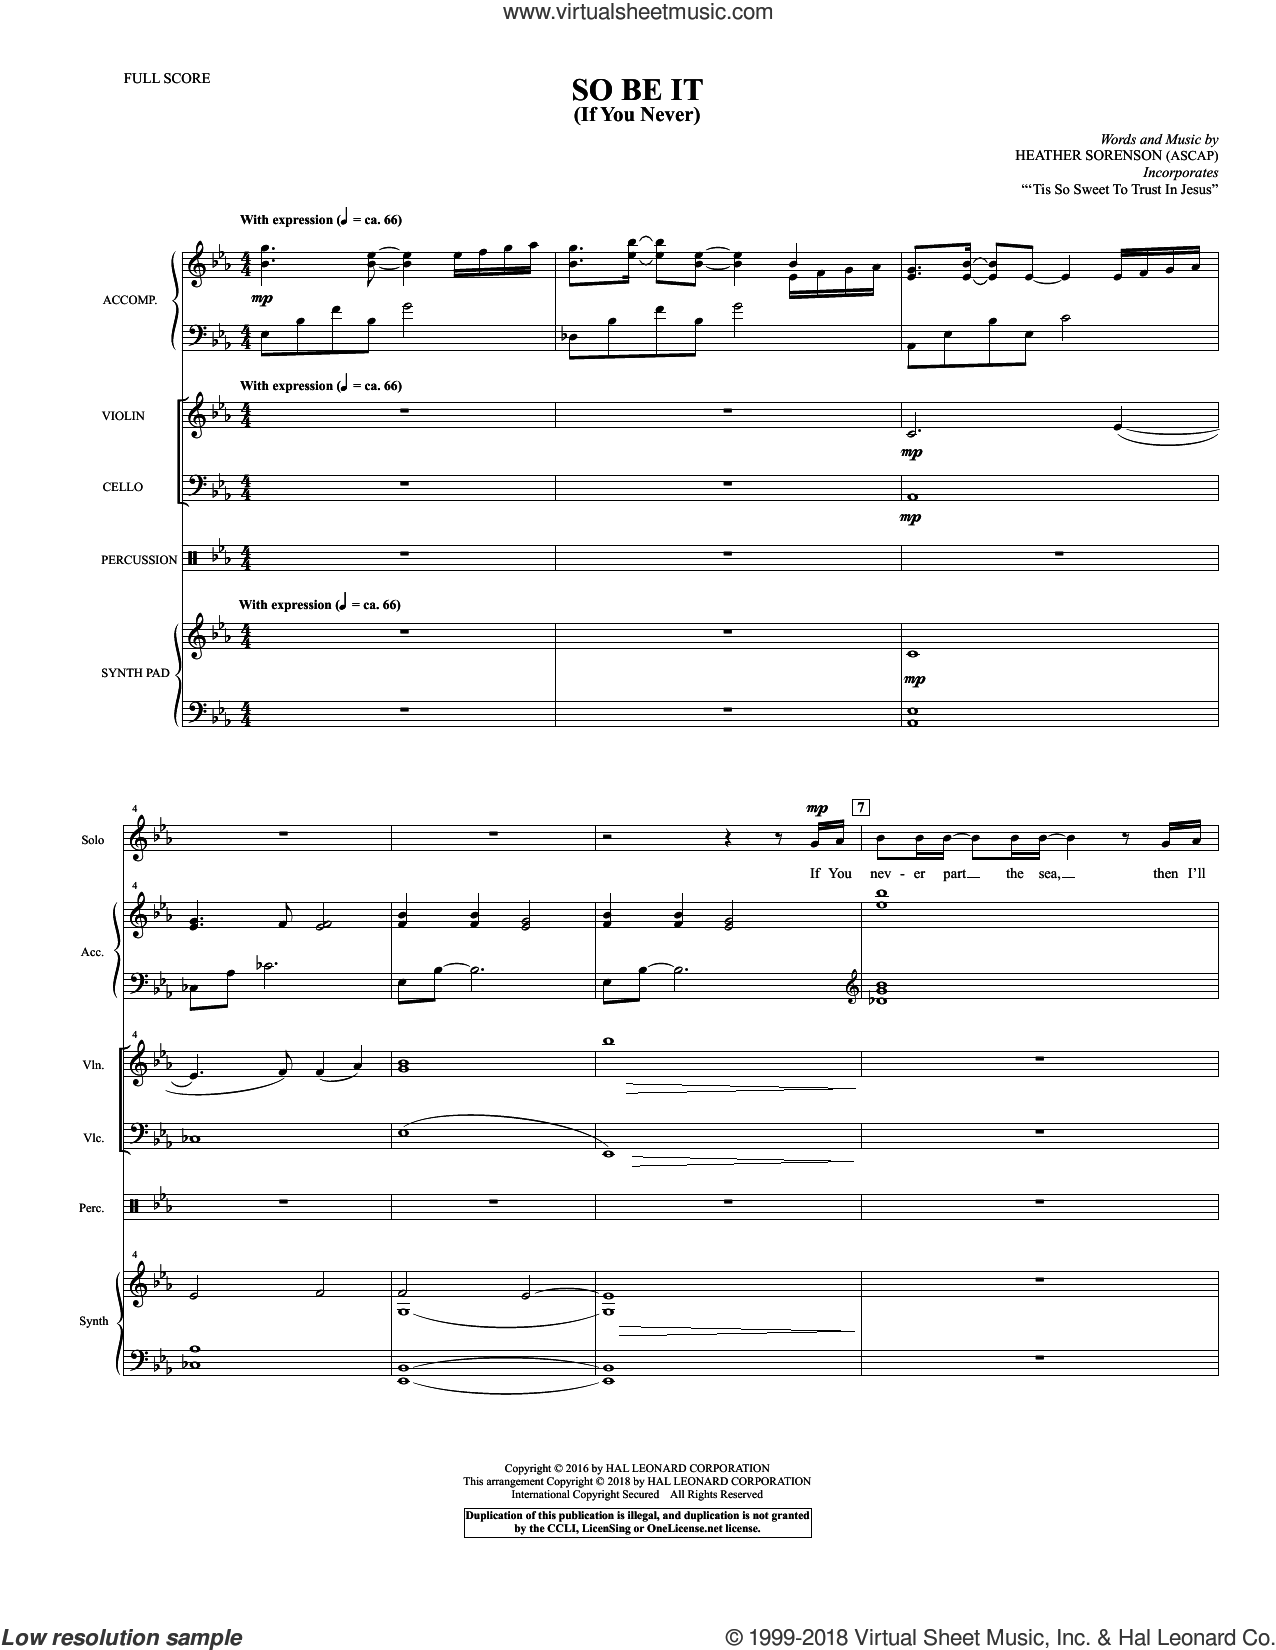 So Be It (If You Never) (COMPLETE) sheet music for orchestra/band by Heather Sorenson, intermediate skill level